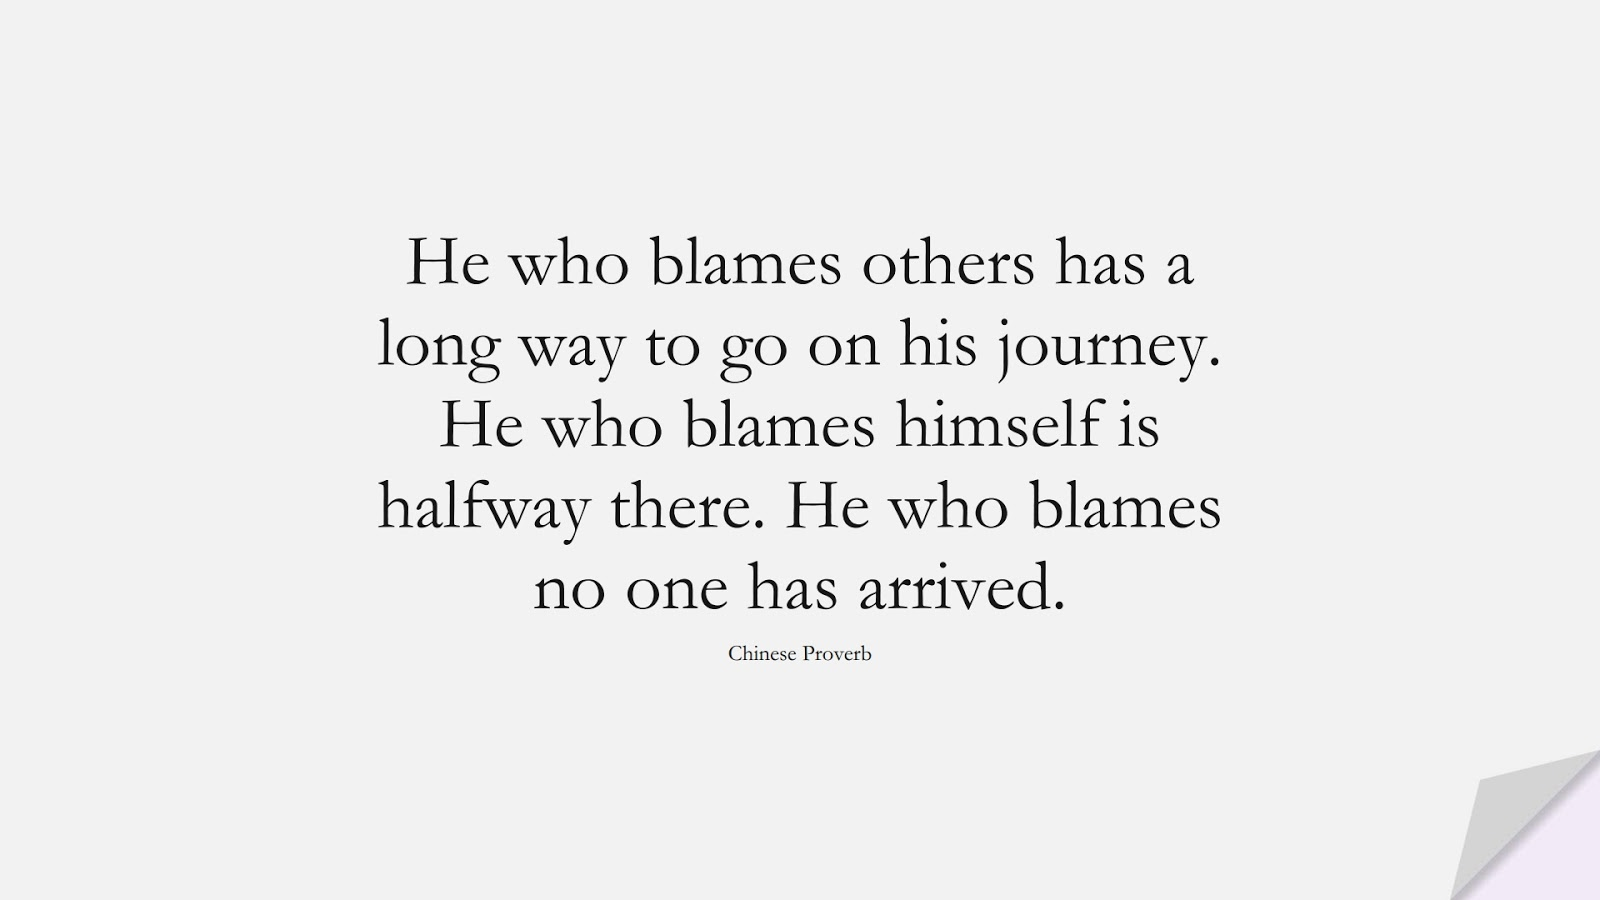 He who blames others has a long way to go on his journey. He who blames himself is halfway there. He who blames no one has arrived. (Chinese Proverb);  #CharacterQuotes